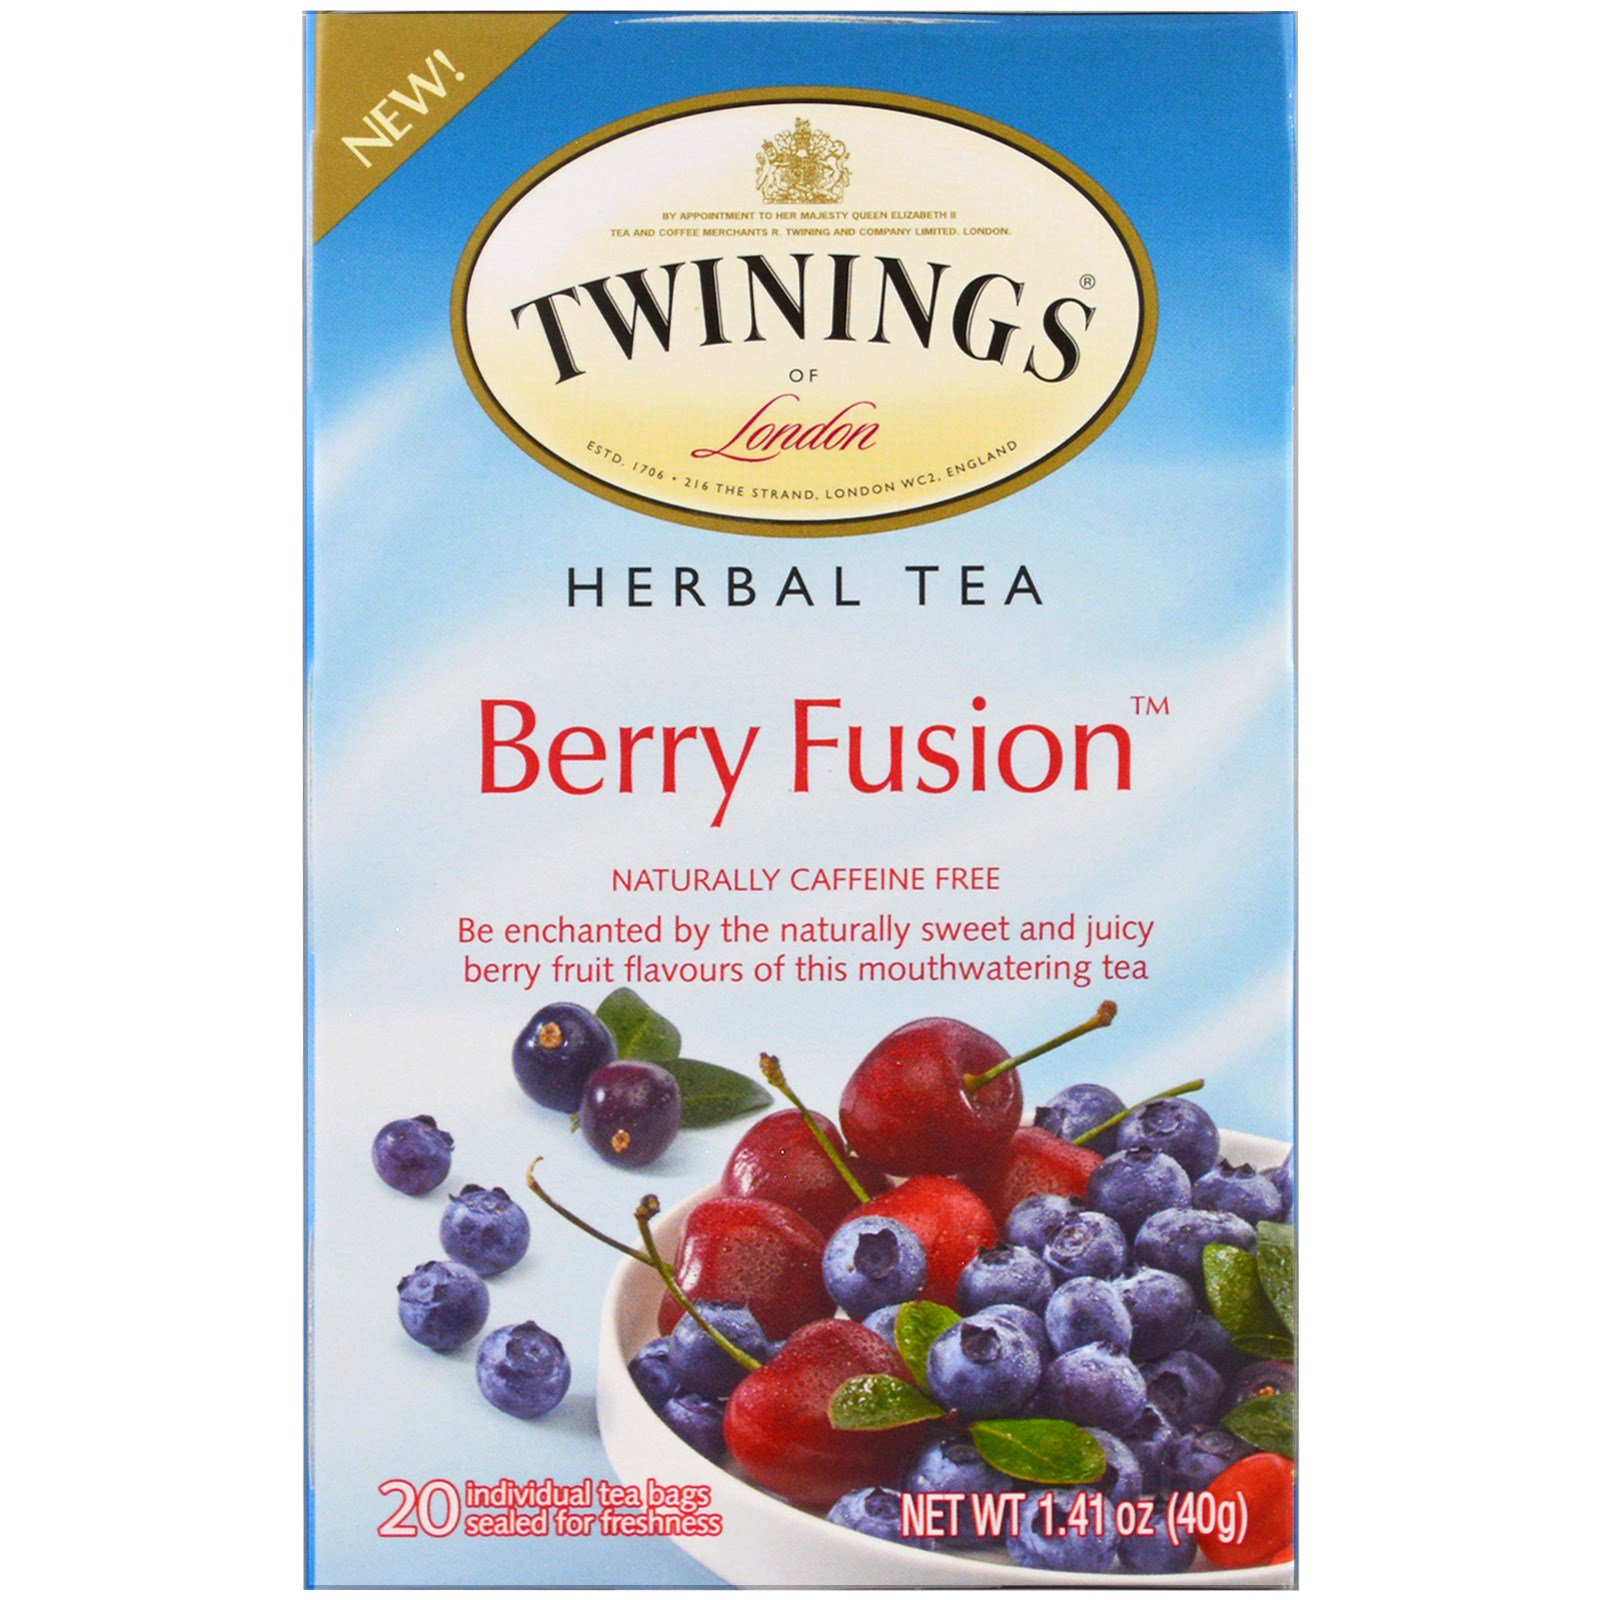 Twinings Herbal Tea Berry Fusion Caffeine Free 20